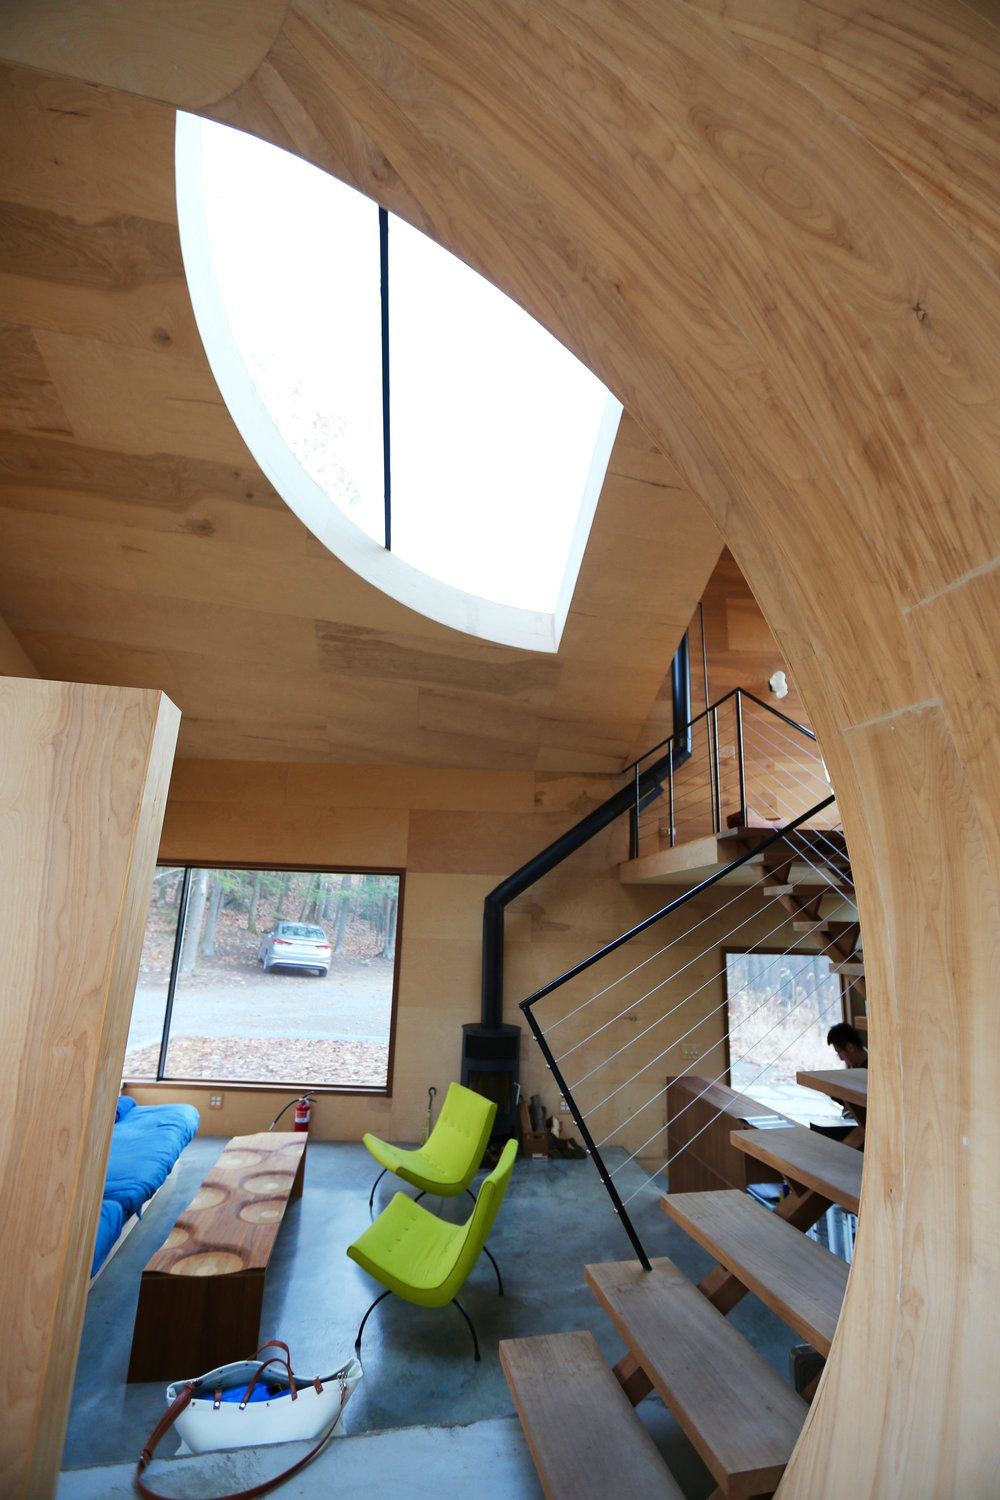 ex of in steven holl house architectual design.jpg